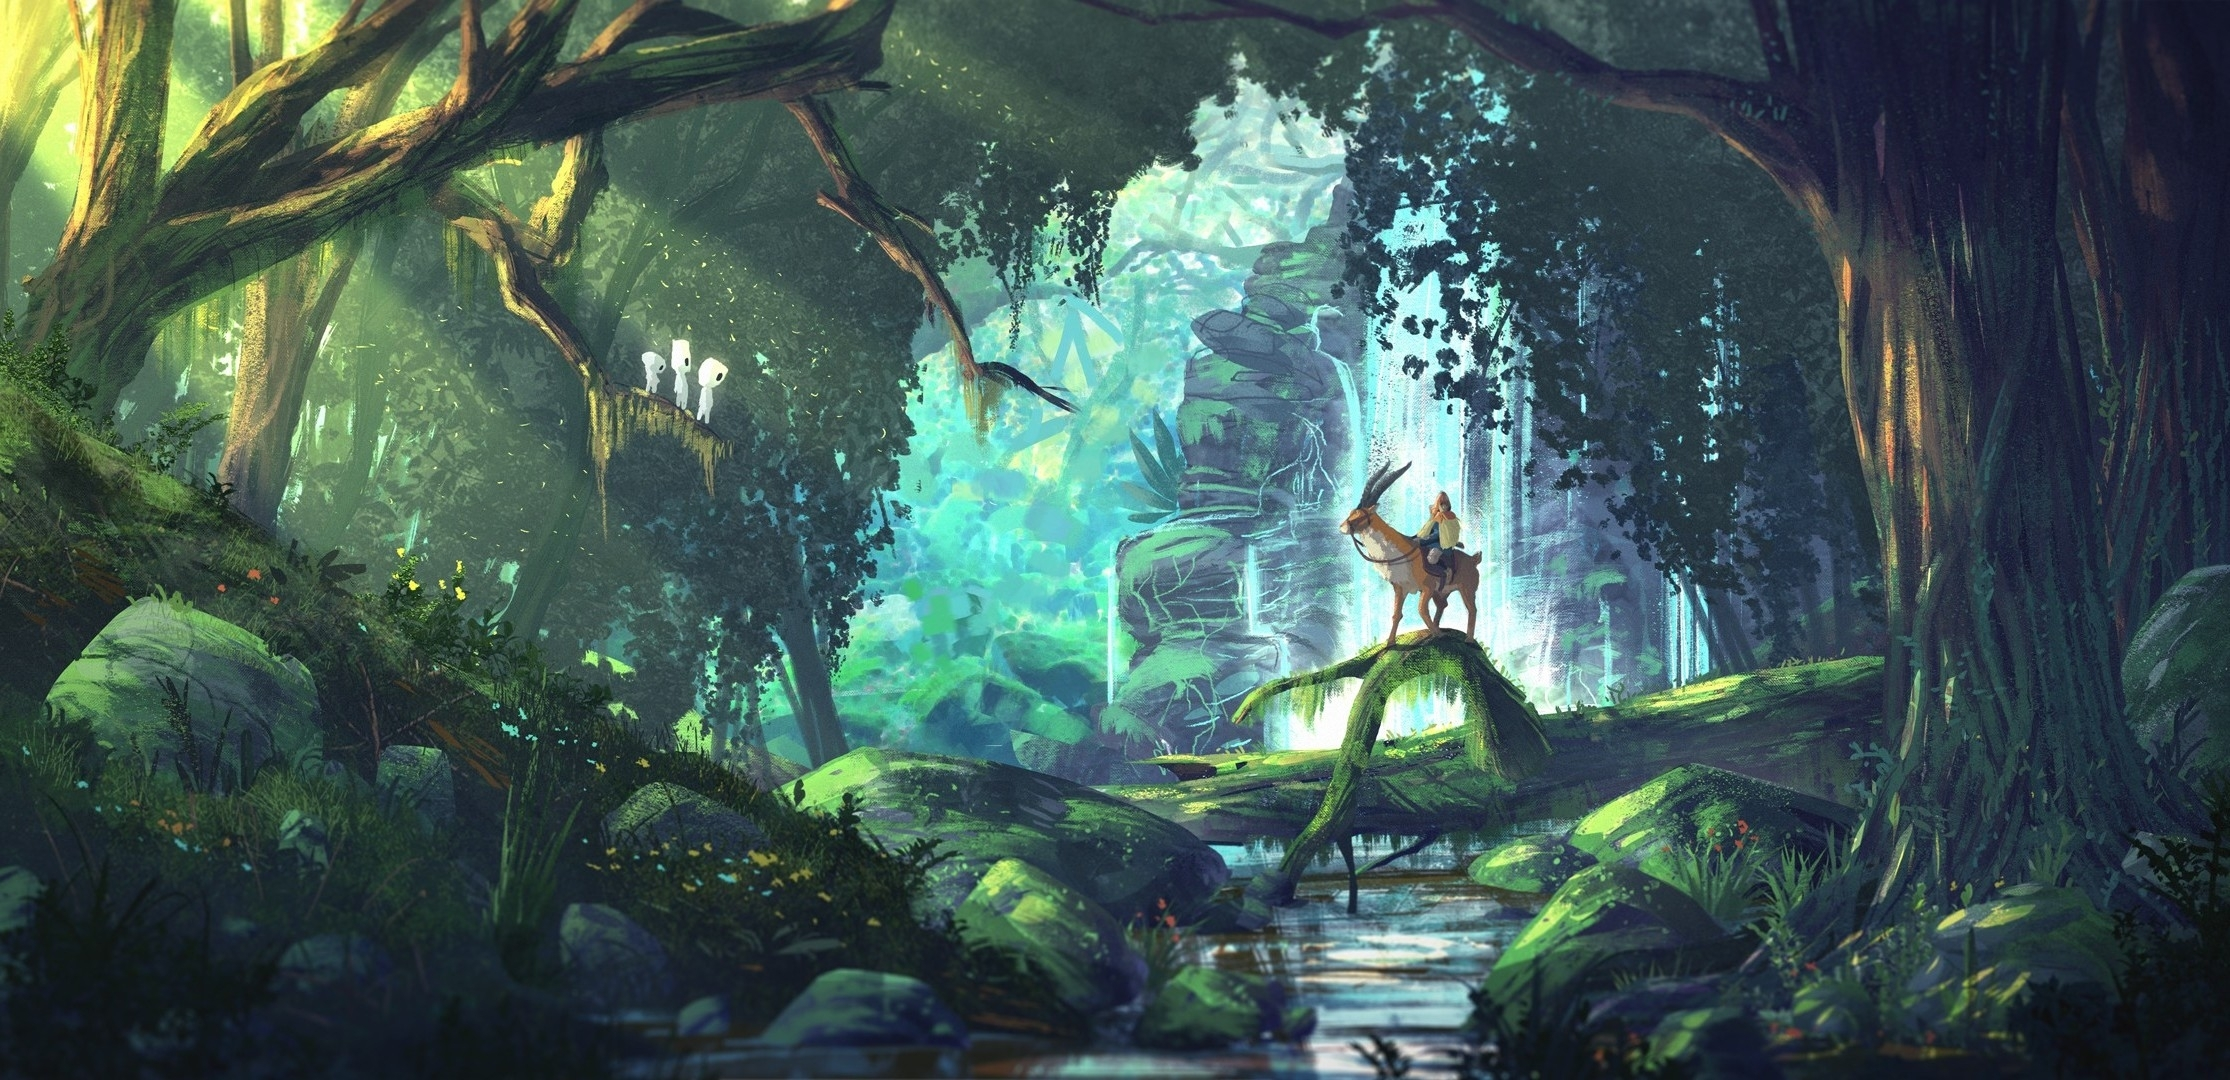 fantasy art, anime, forest, princess mononoke, studio ghibli